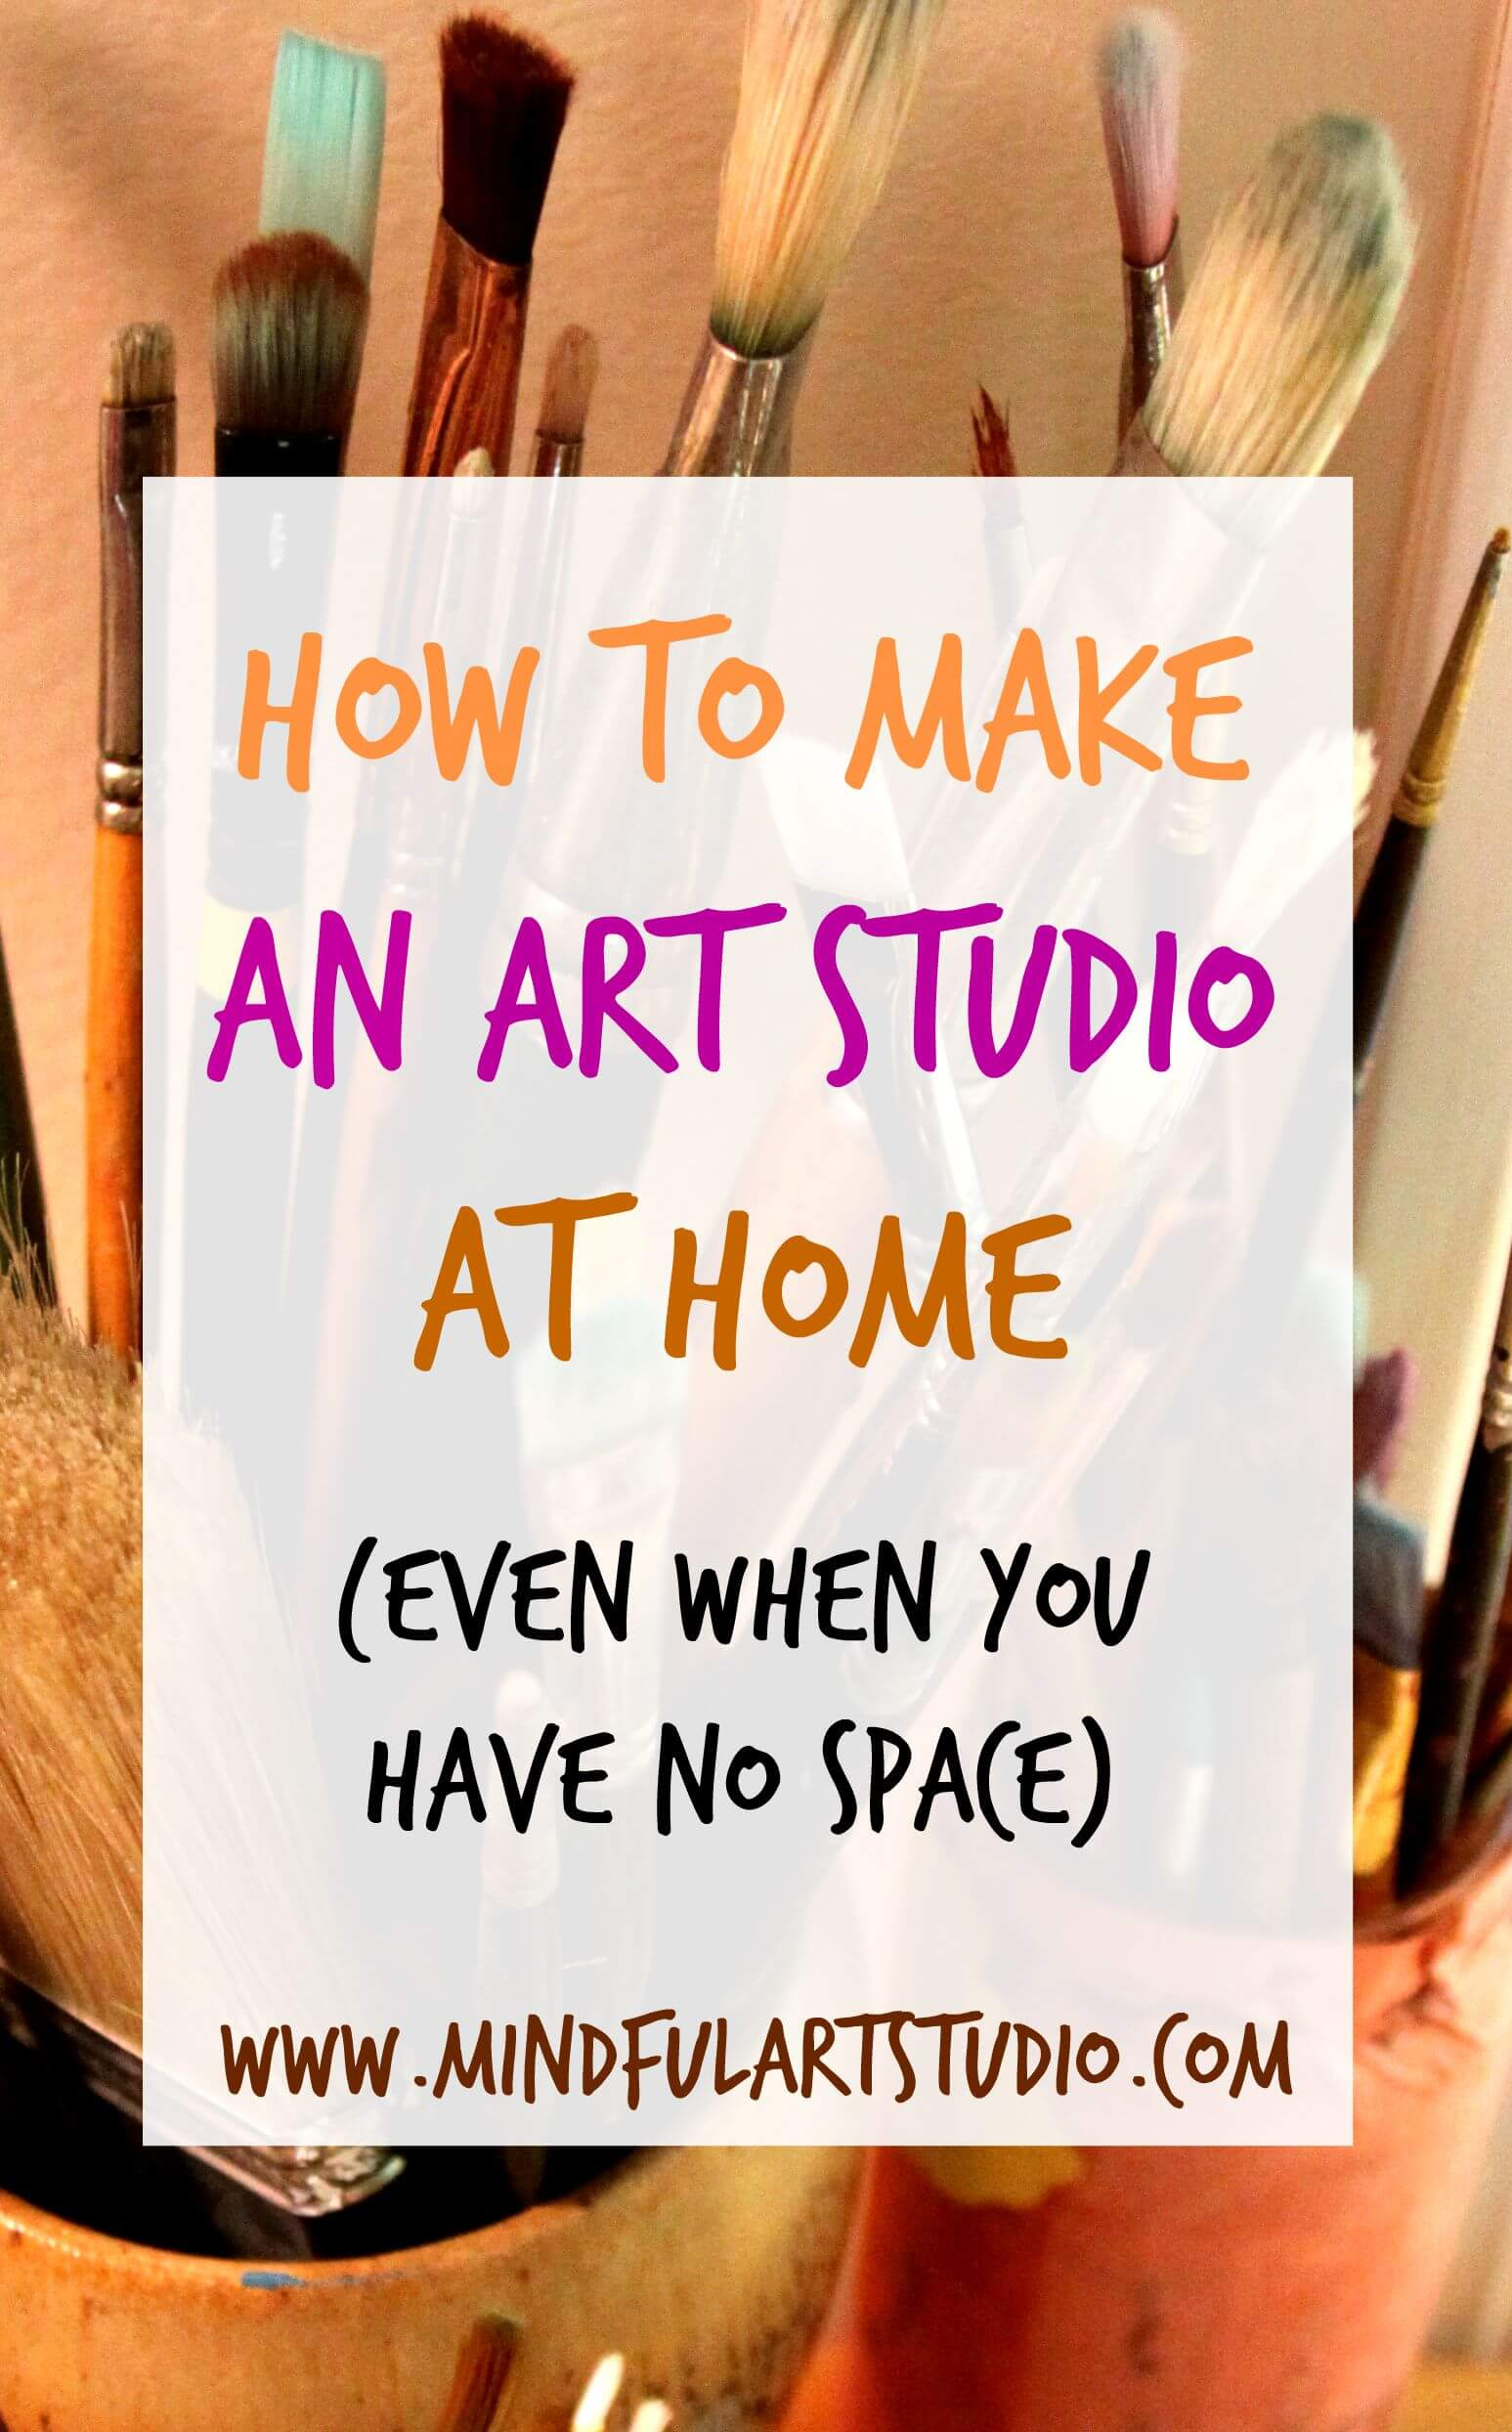 Miraculous 12 Ways To Make An Art Studio At Home Largest Home Design Picture Inspirations Pitcheantrous